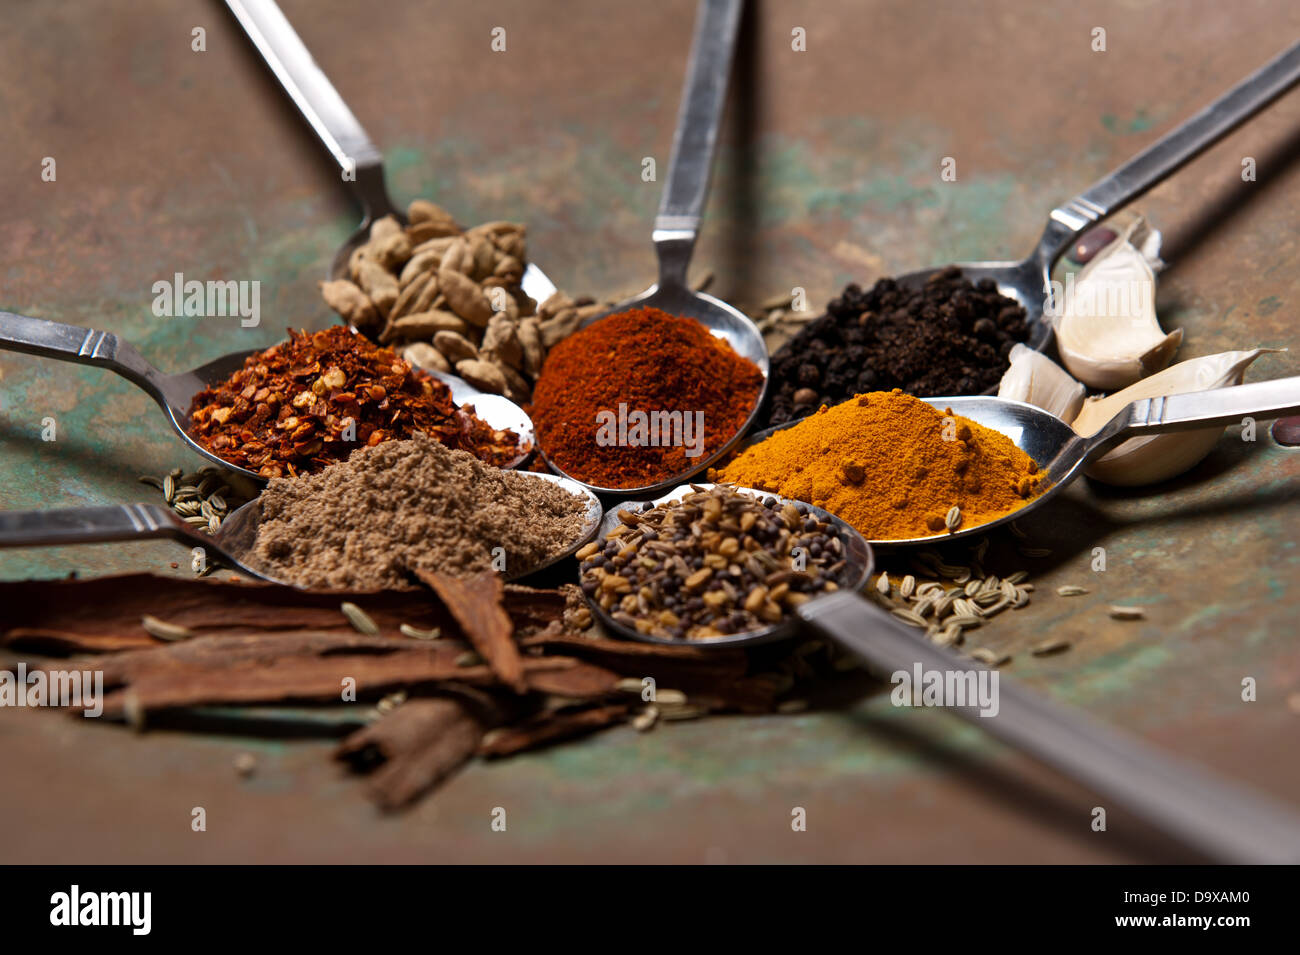 7 Table spoons arranged with different spices in a round Indian dish. - Stock Image